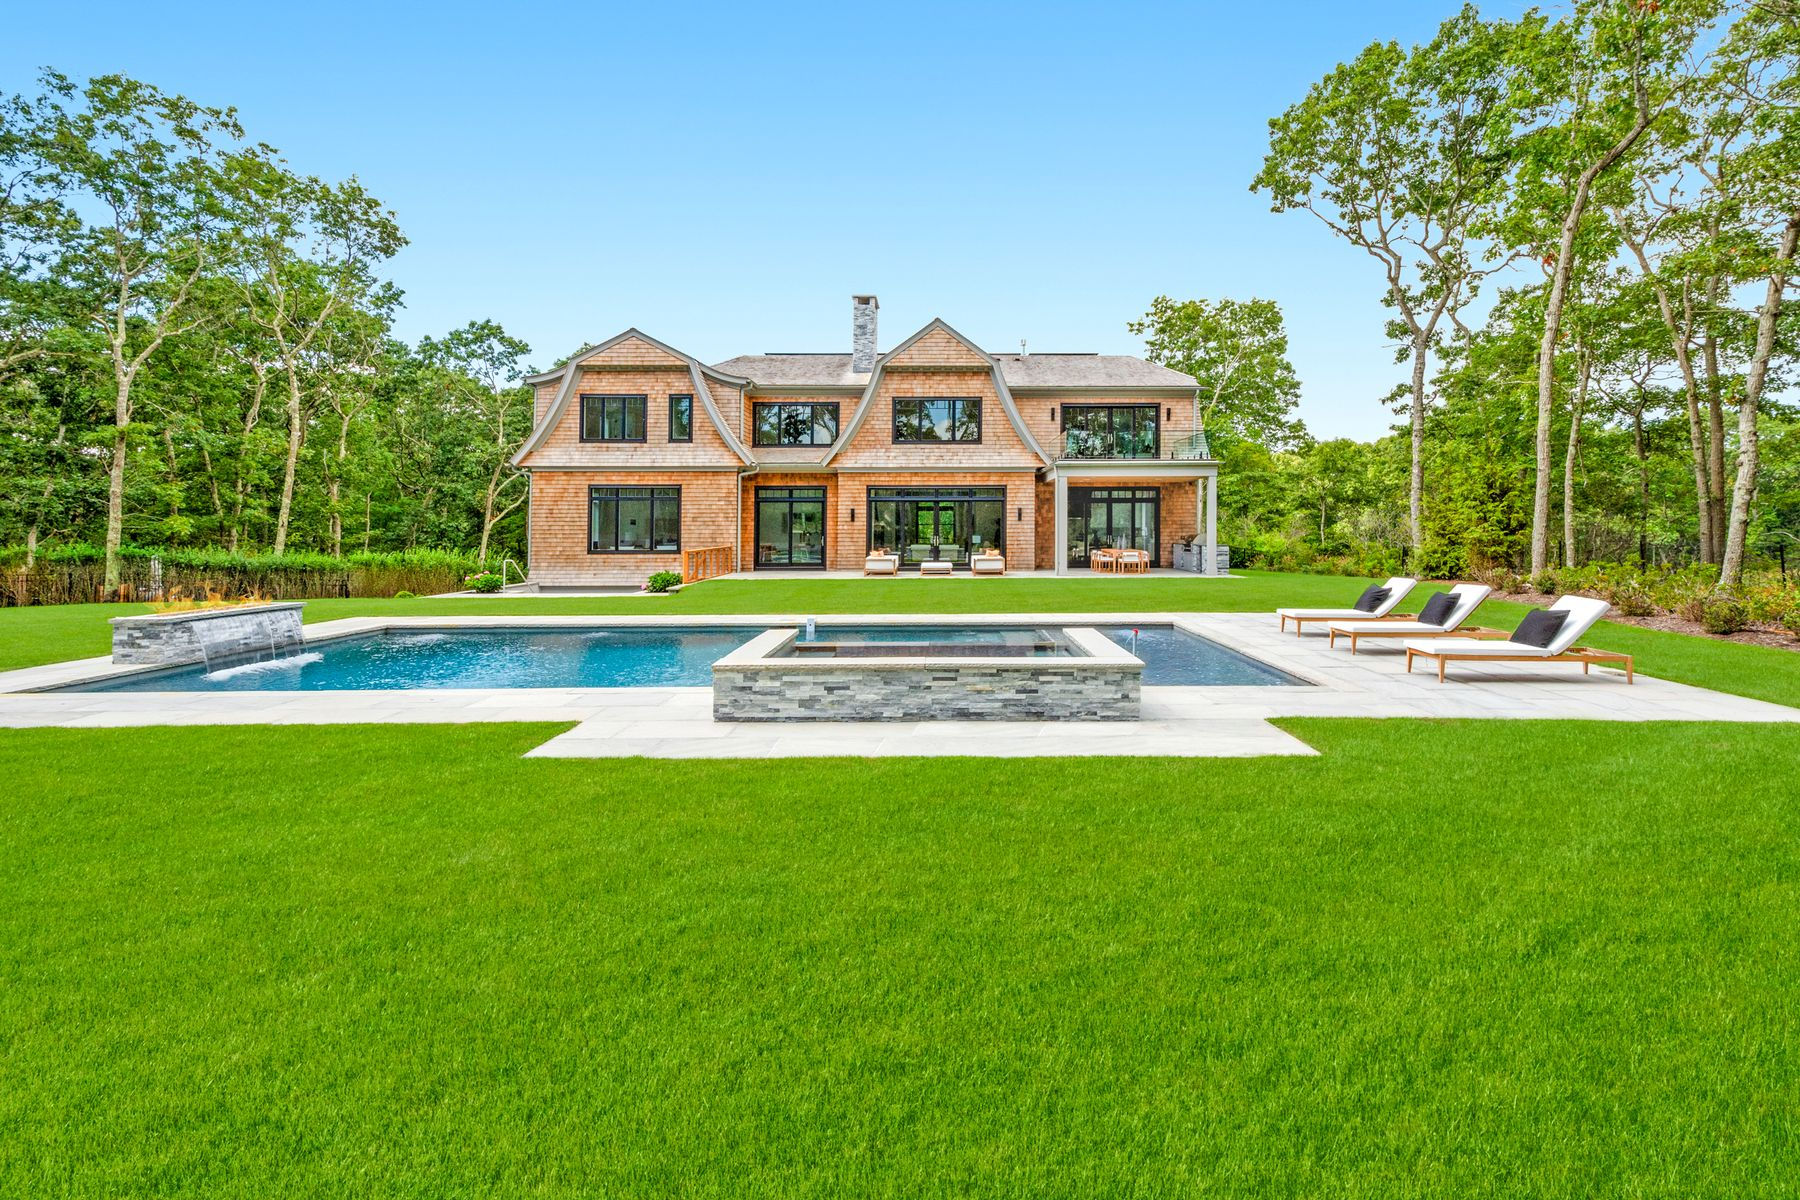 Single Family Homes für Verkauf beim 5 Acre Estate Overlooking Golf Course 18 Fairway Court, Sag Harbor, New York 11963 Vereinigte Staaten